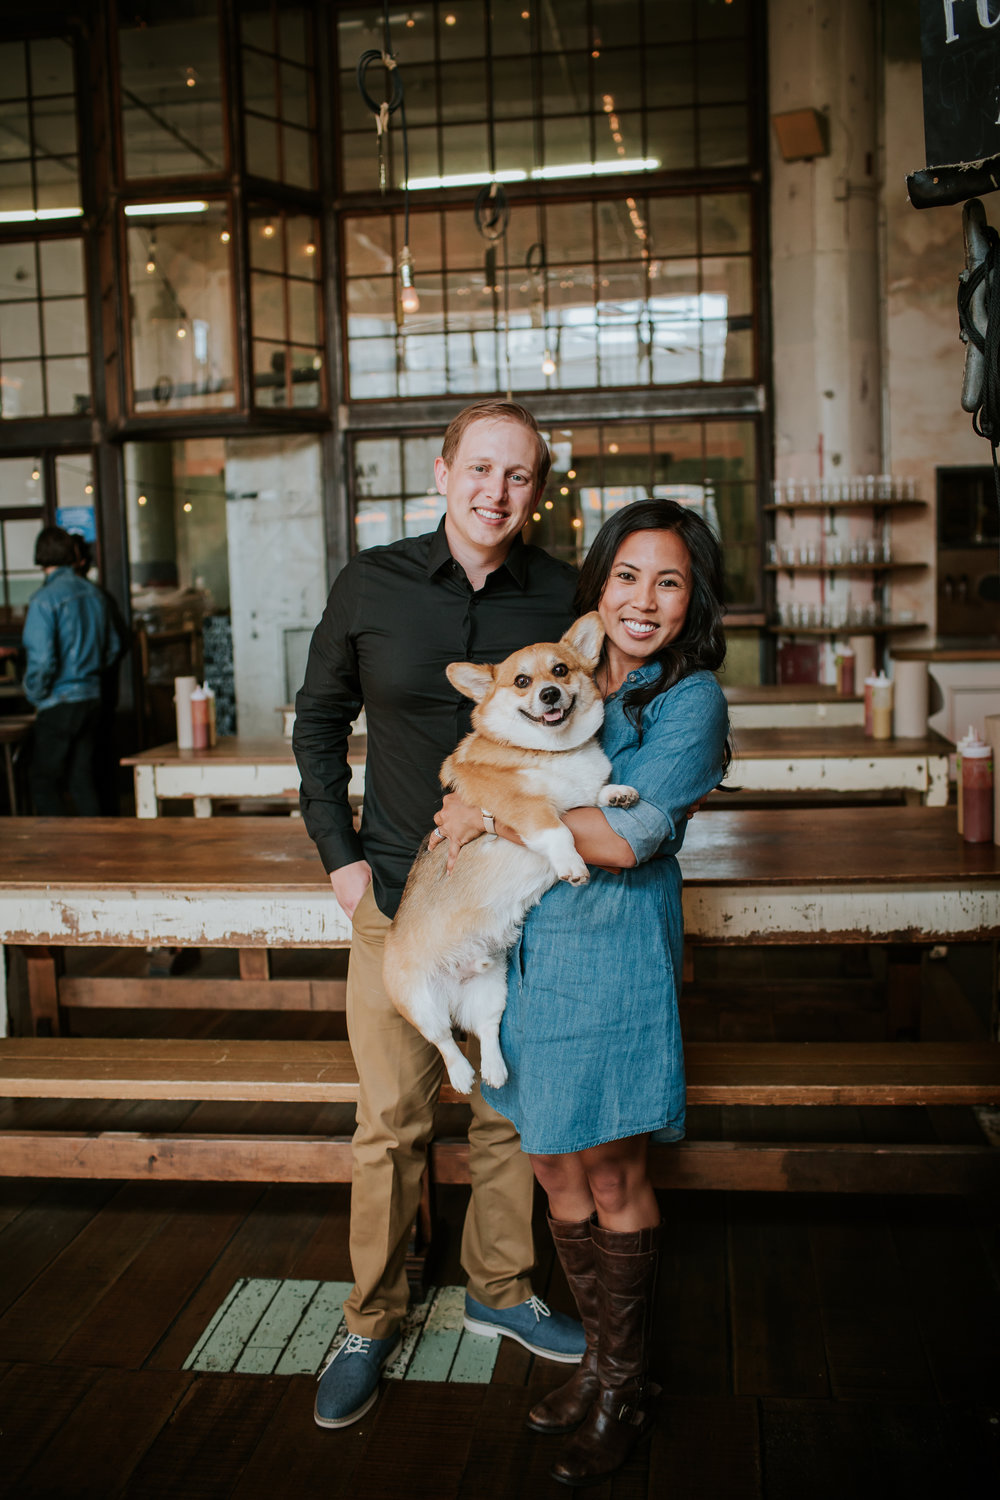 Penney and Chad San Francisco Engagament Session Brewery Mission Dolores_-12.jpg